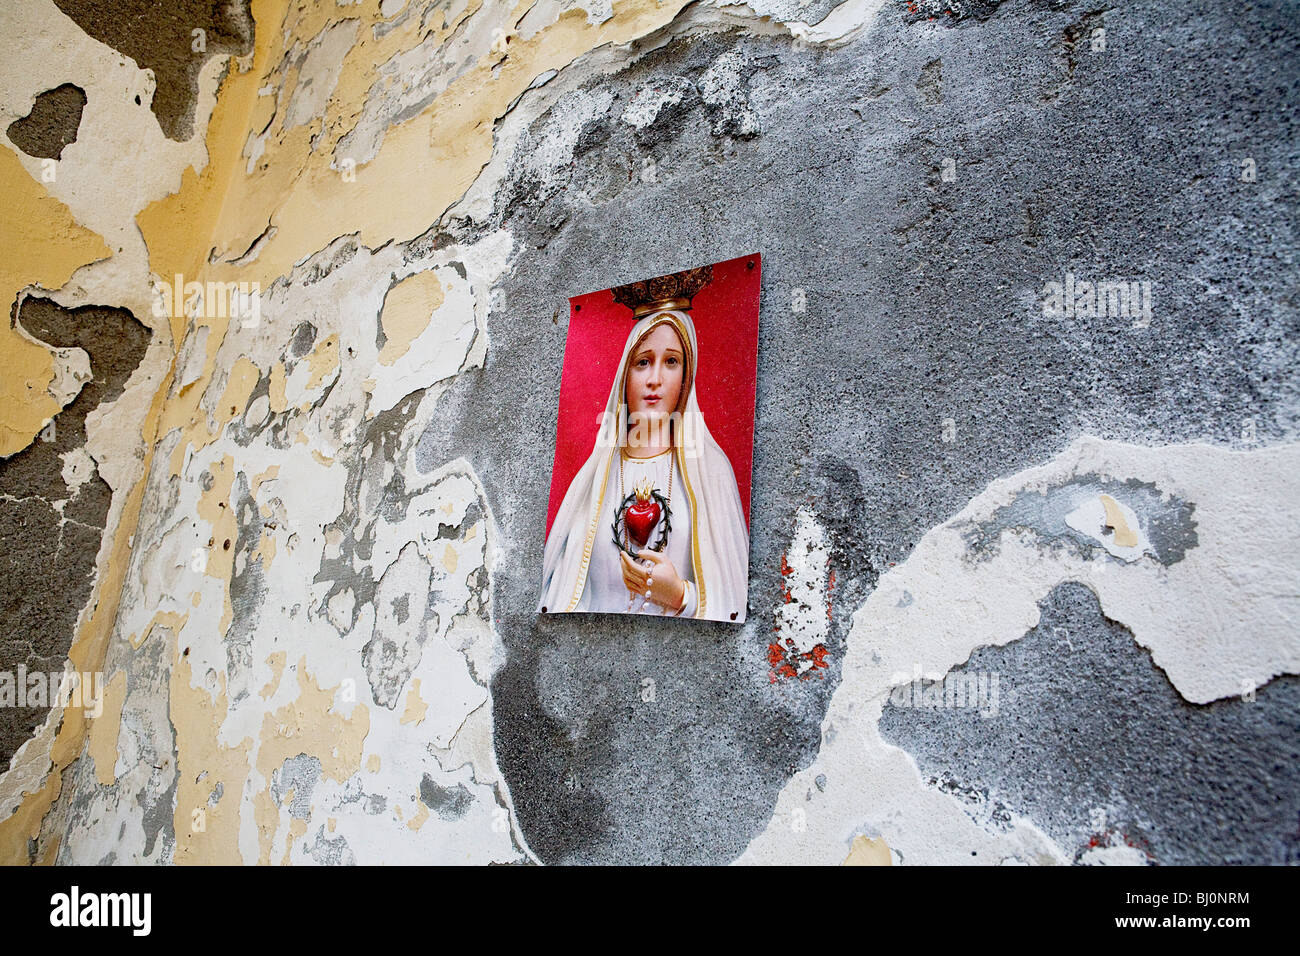 picture of virgin mary hanging on wall in Italy - Stock Image